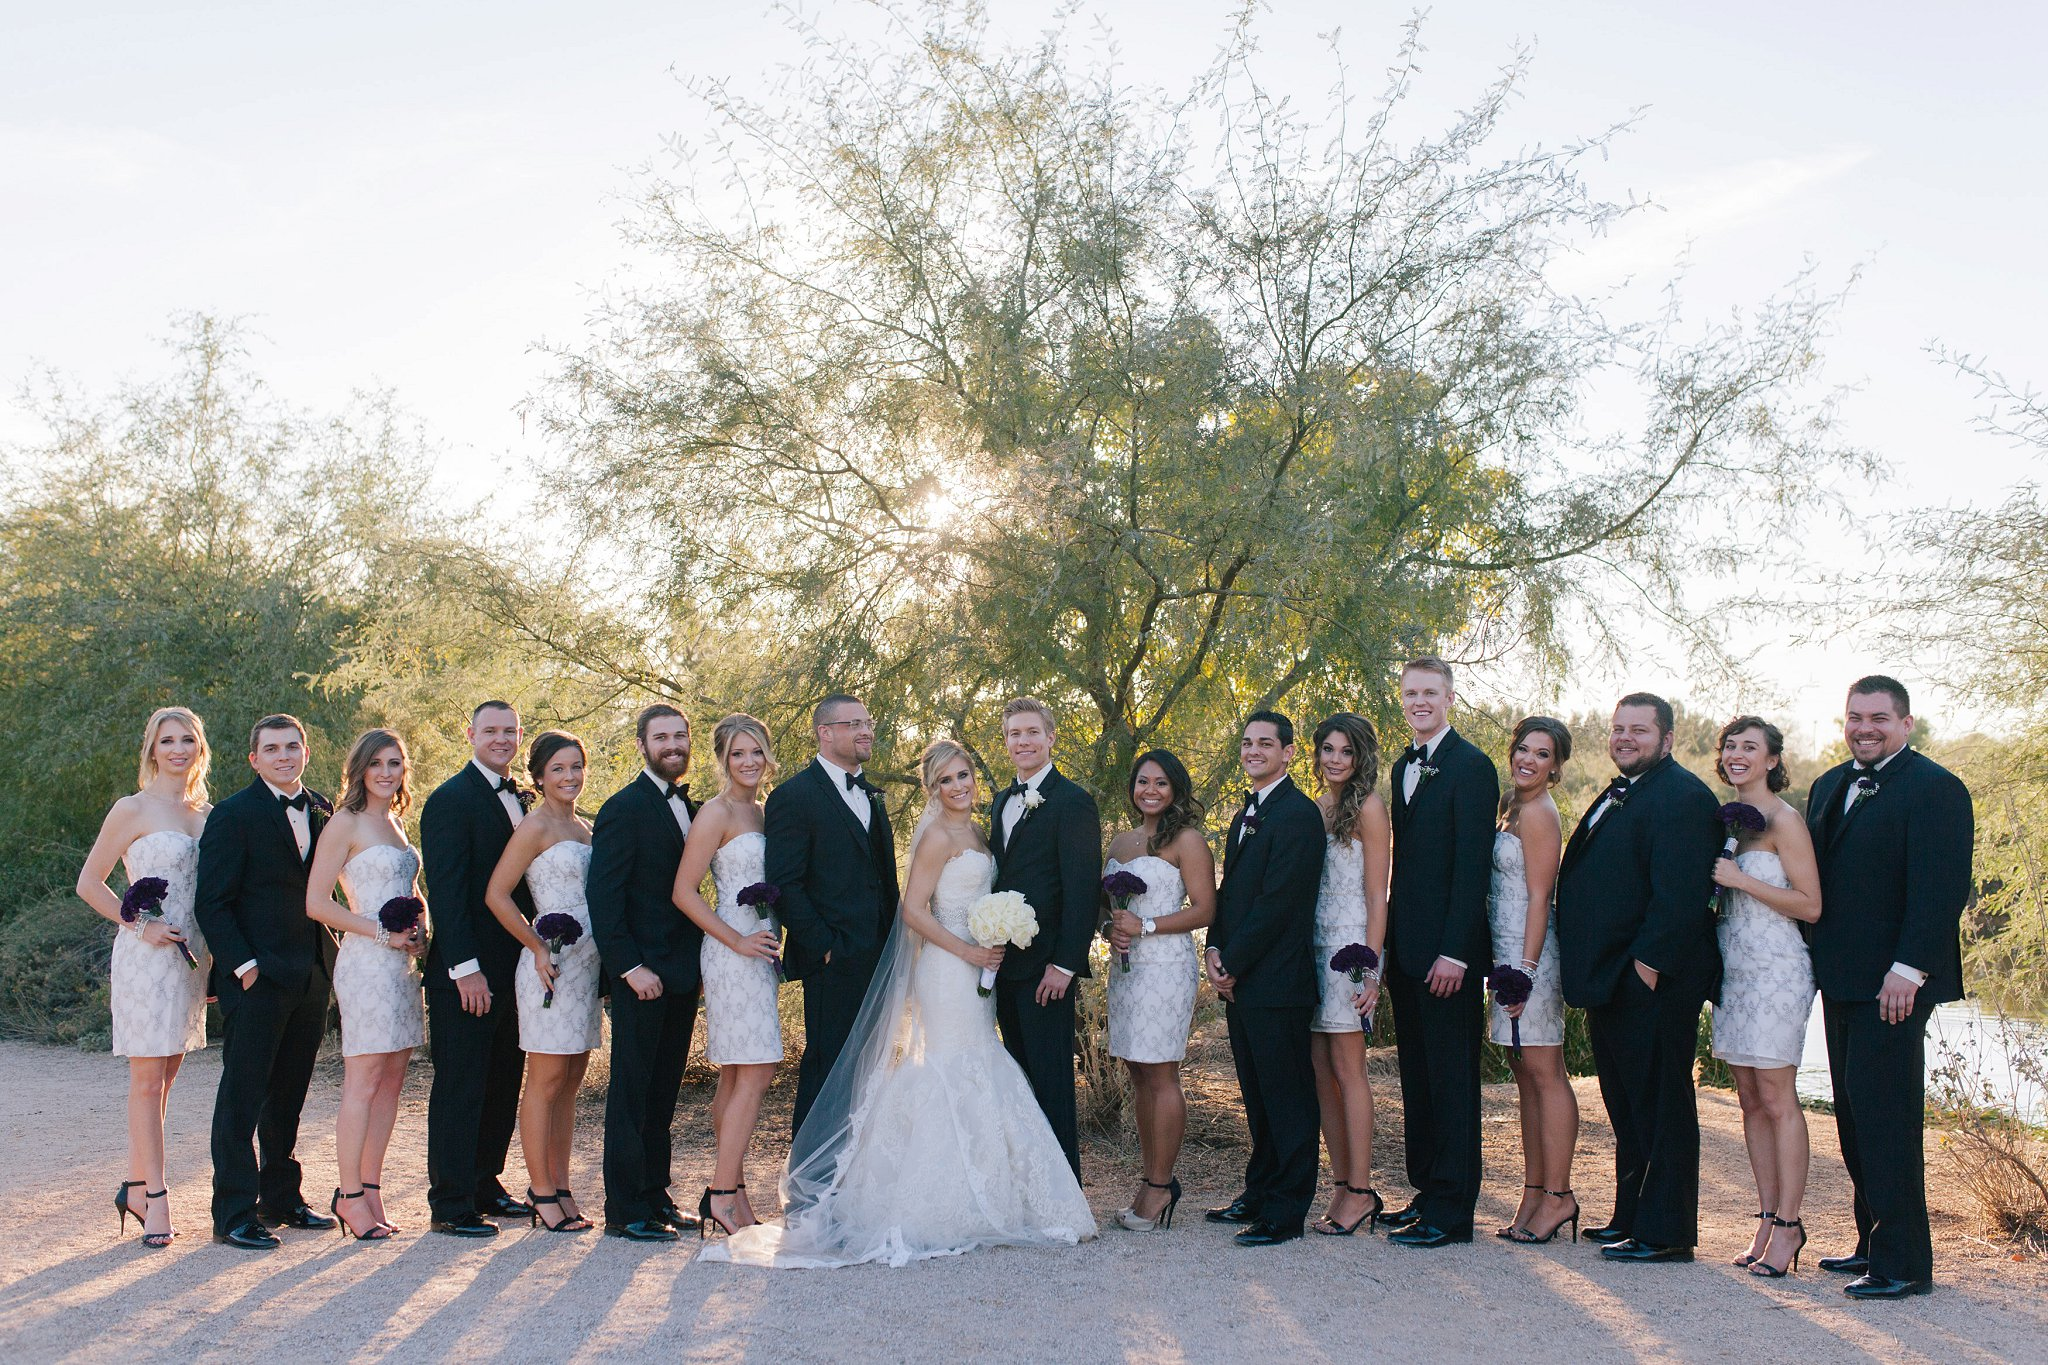 classic white & black wedding party at Gilbert Riparian Preserve in Mesa